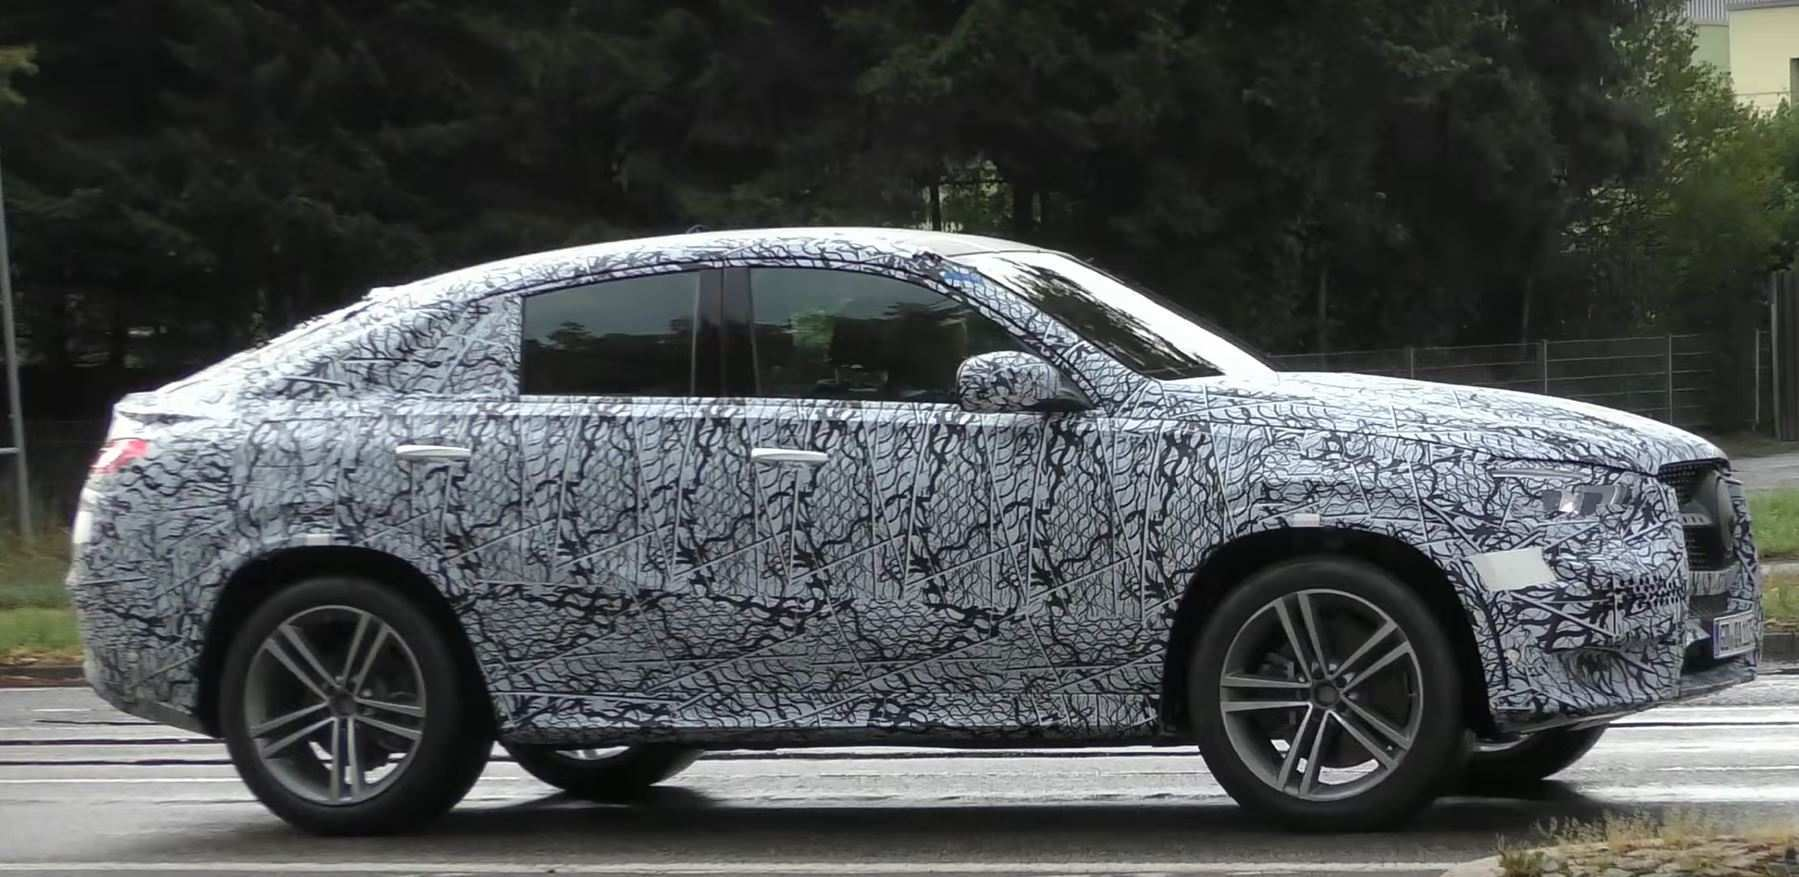 49 All New 2020 Mercedes Gle Coupe Model for 2020 Mercedes Gle Coupe